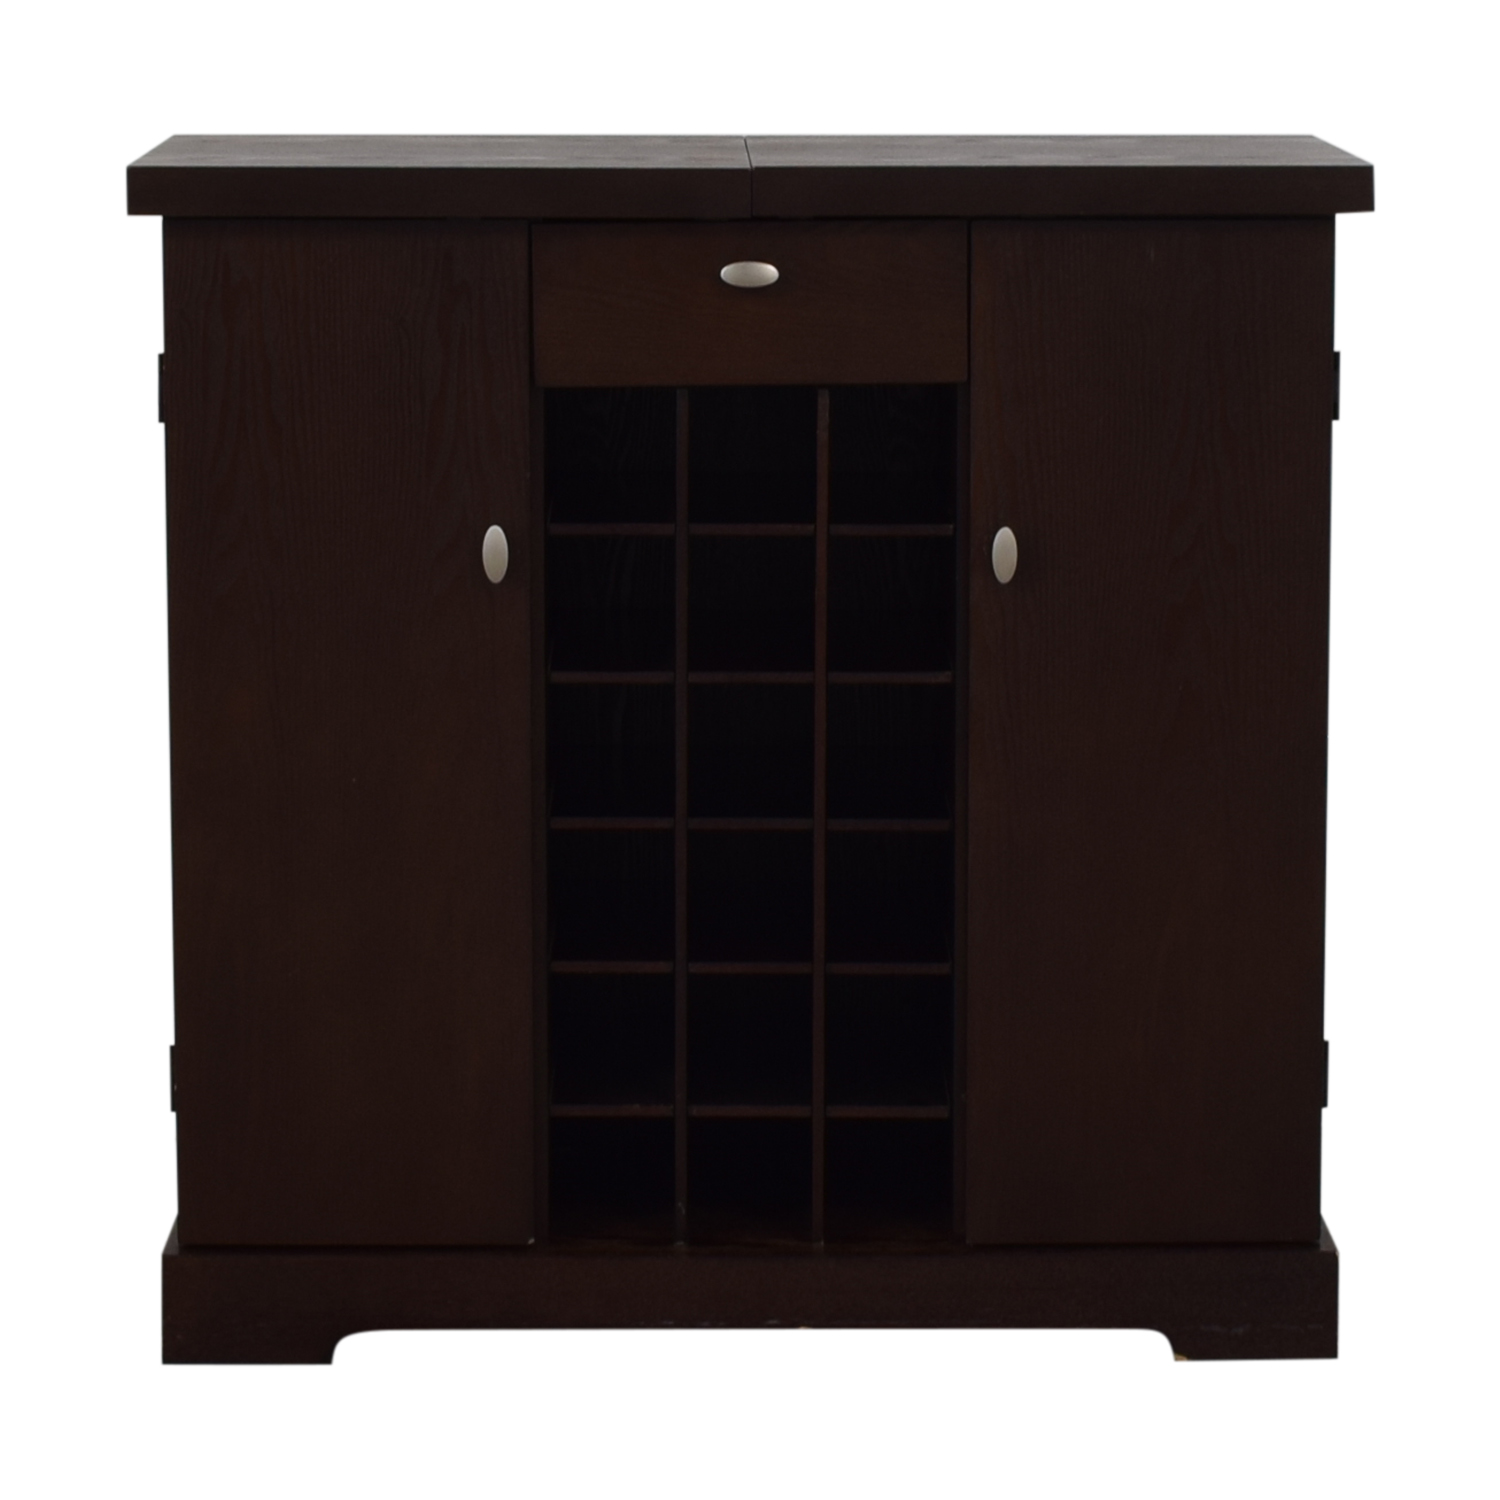 buy Crate & Barrel Bar Cabinet Crate & Barrel Cabinets & Sideboards